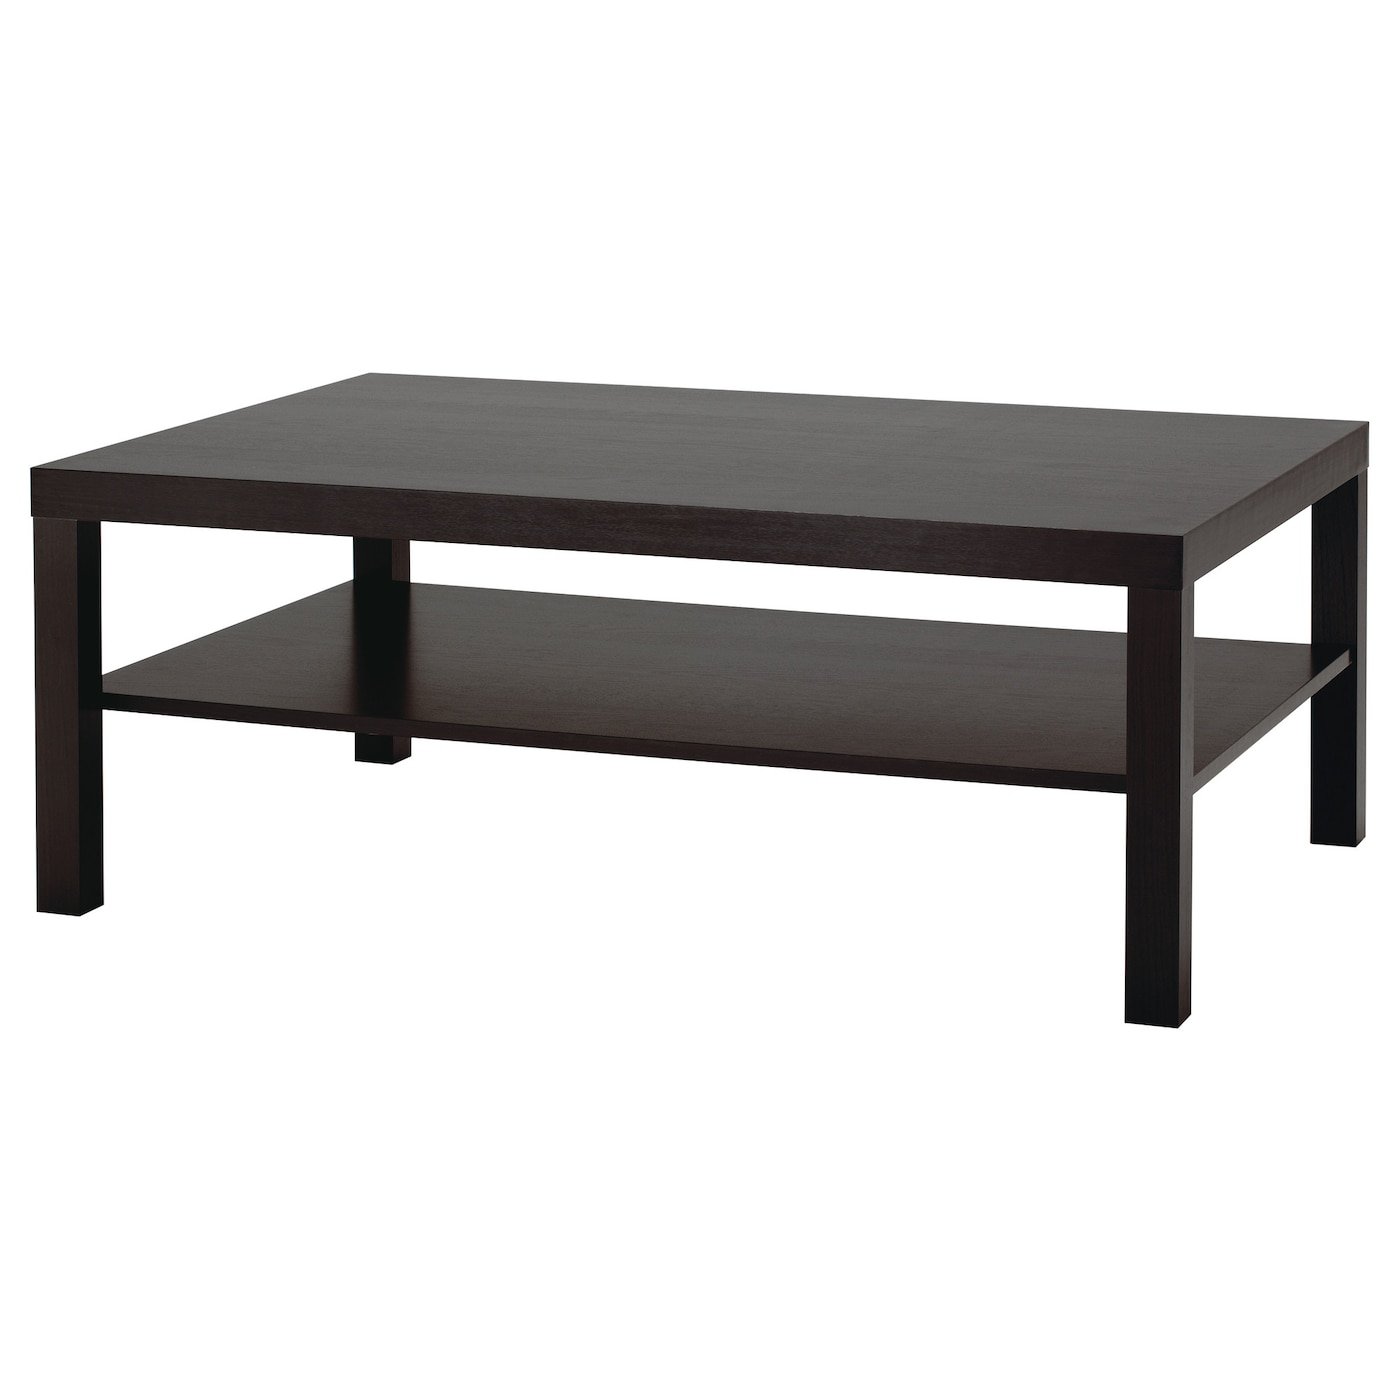 Coffee Tables IKEA Ireland Dublin : lack coffee table black brown57537pe163119s5 from www.ikea.com size 2000 x 2000 jpeg 200kB